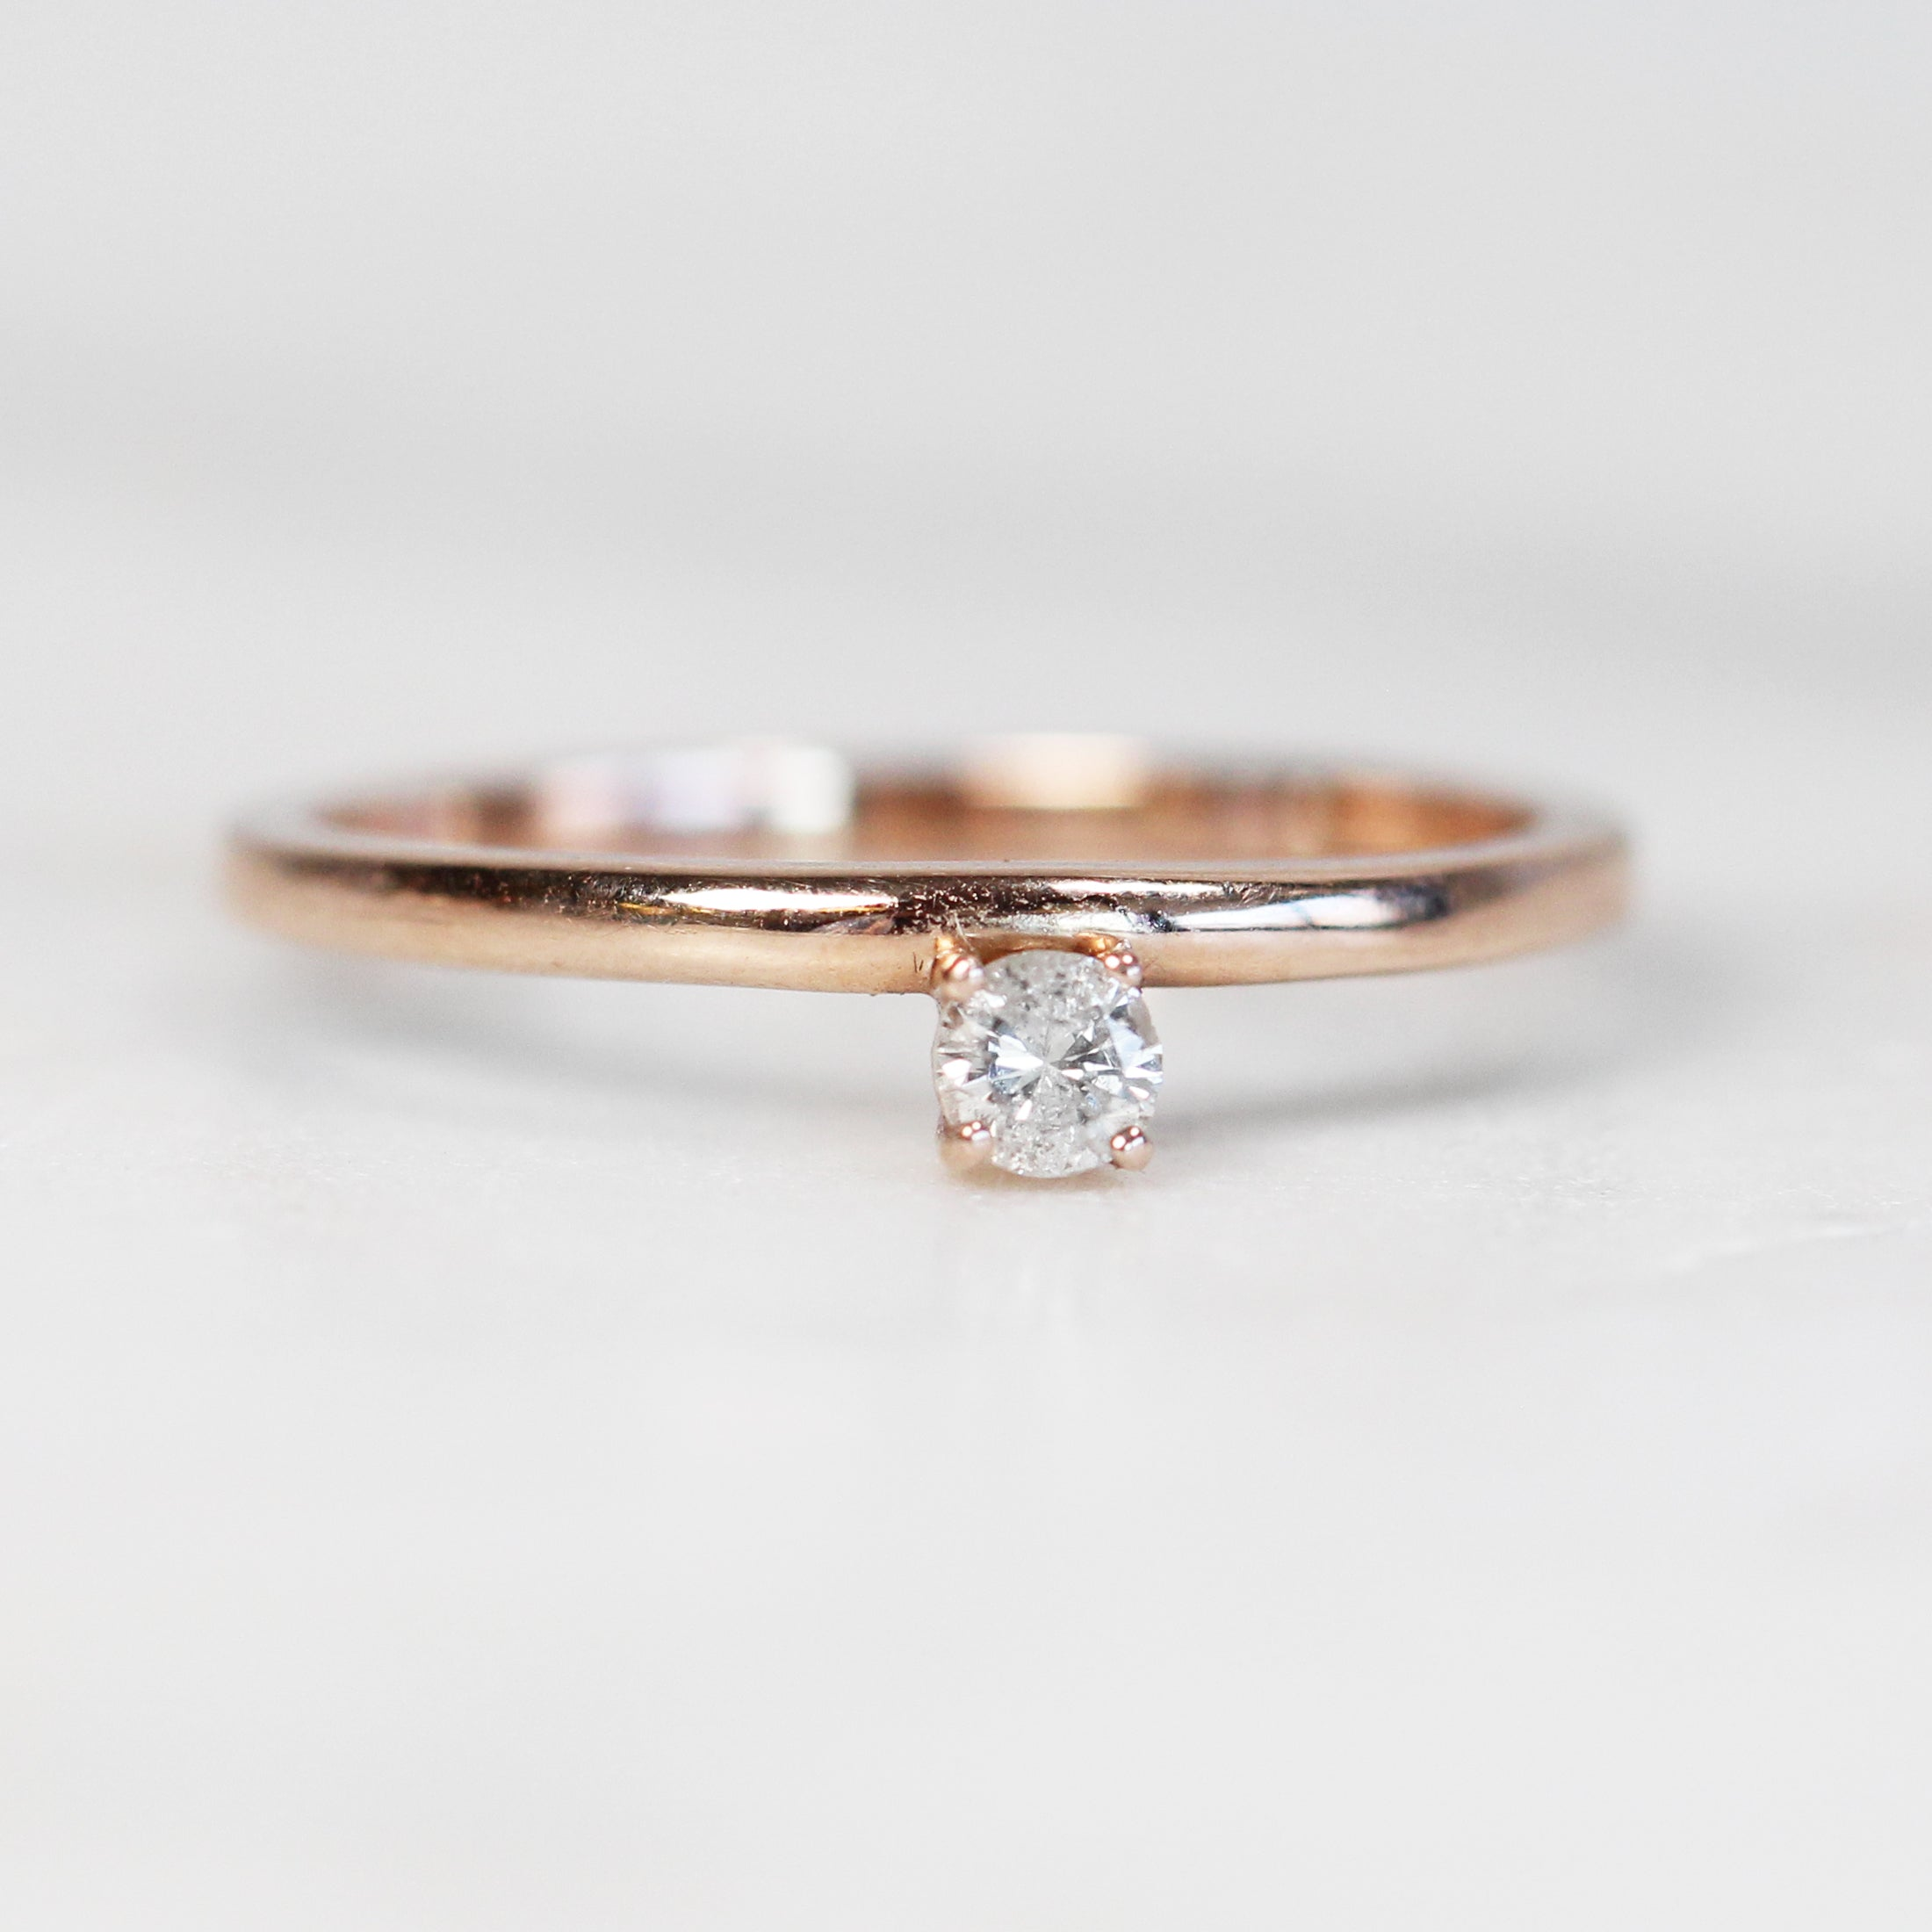 Najeal Ring - Asymmetrical Solitaire Diamond Ring in 14k Rose Gold - Salt & Pepper Celestial Diamond Engagement Rings and Wedding Bands  by Midwinter Co.